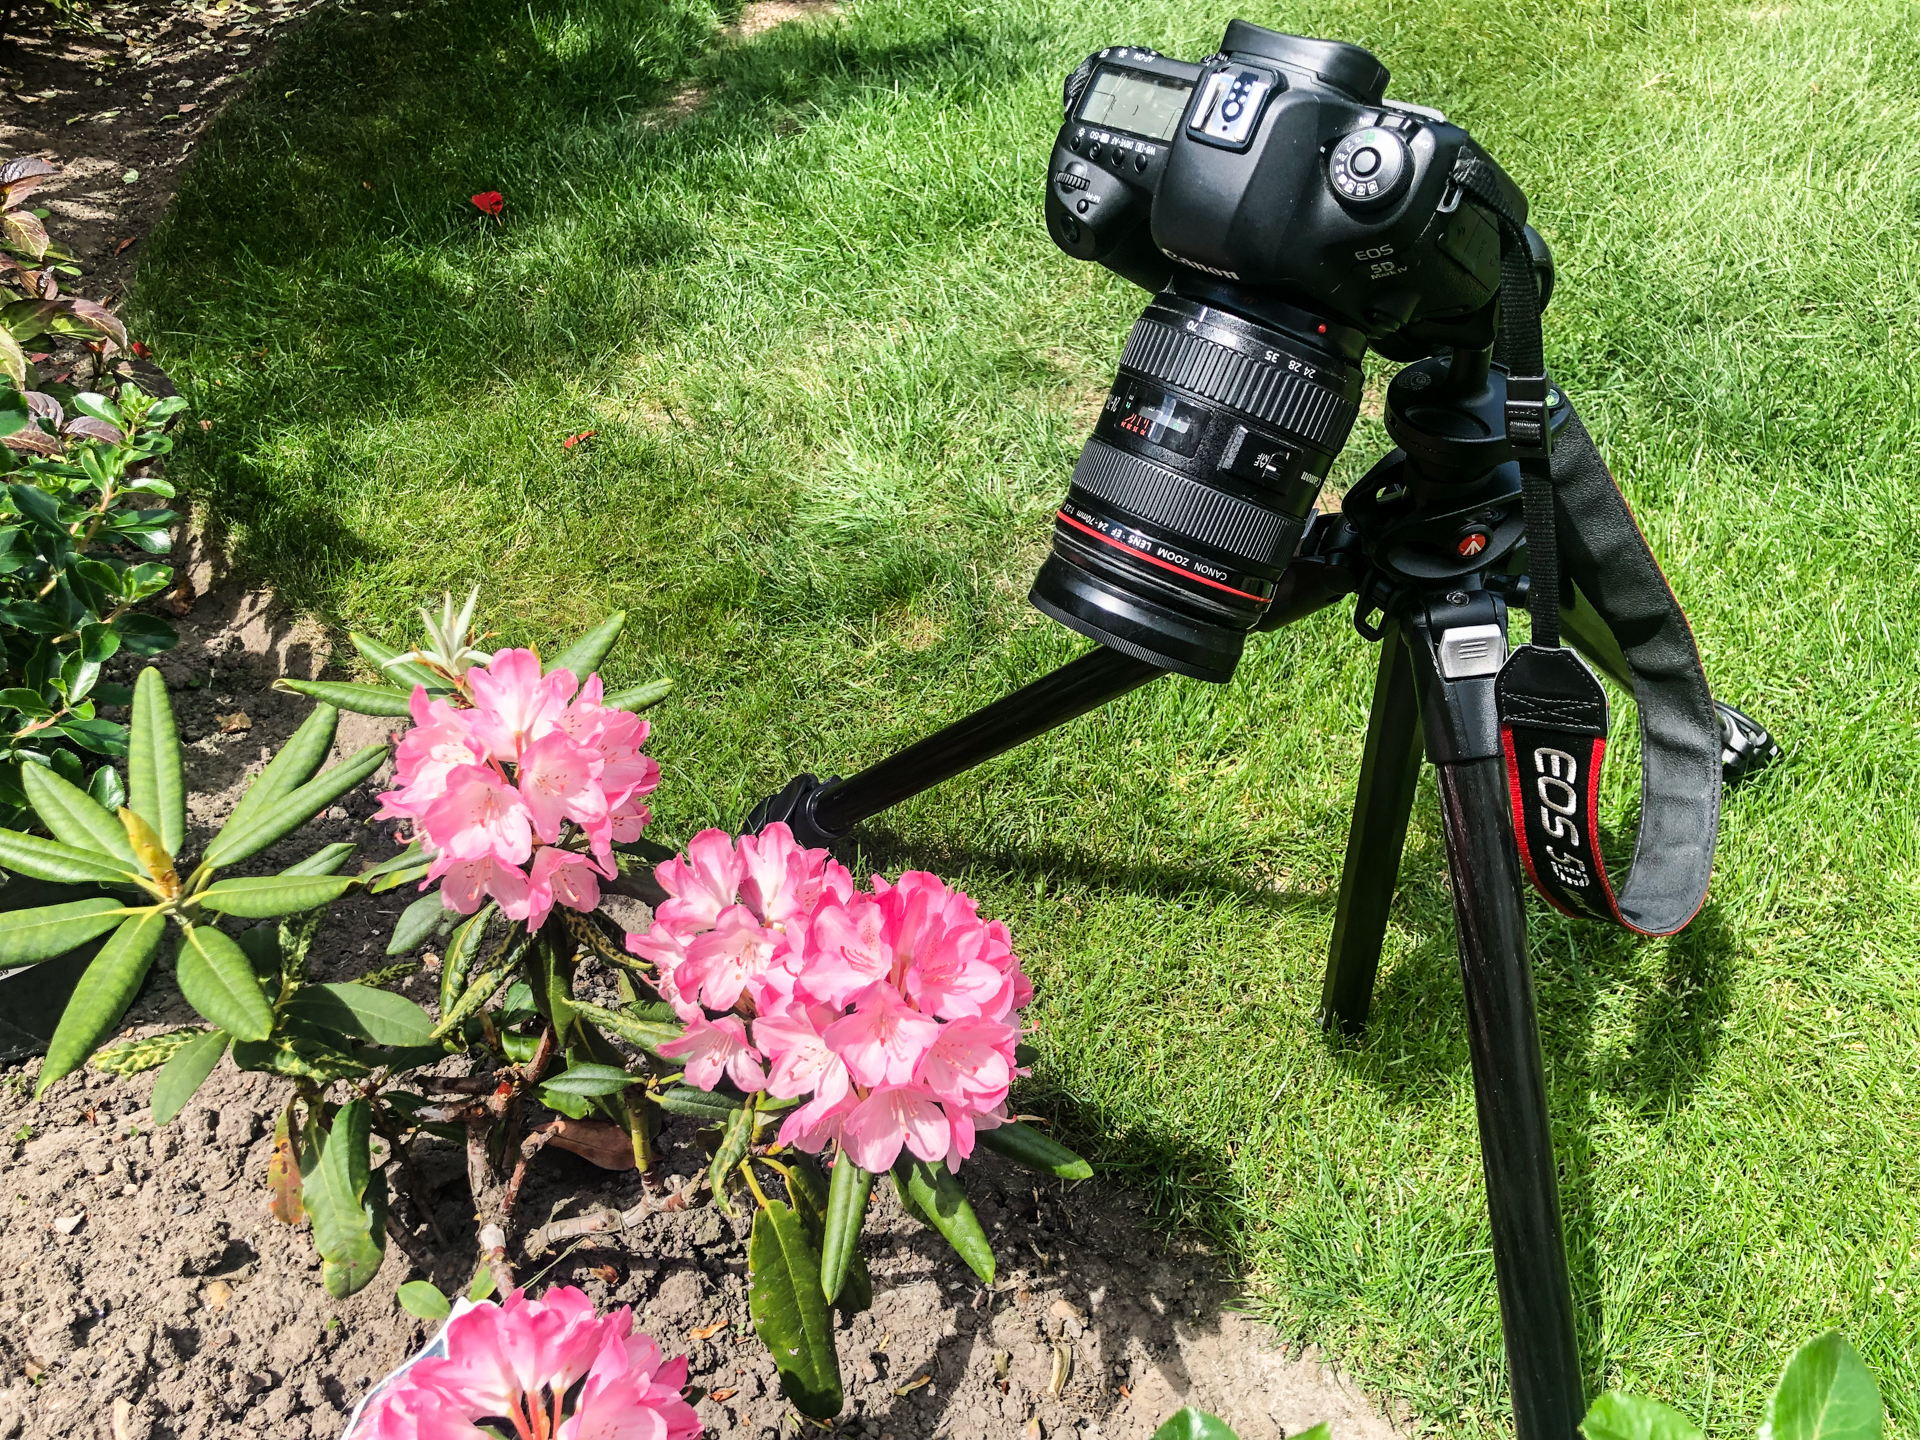 Camera on a tripod looking down at flowers